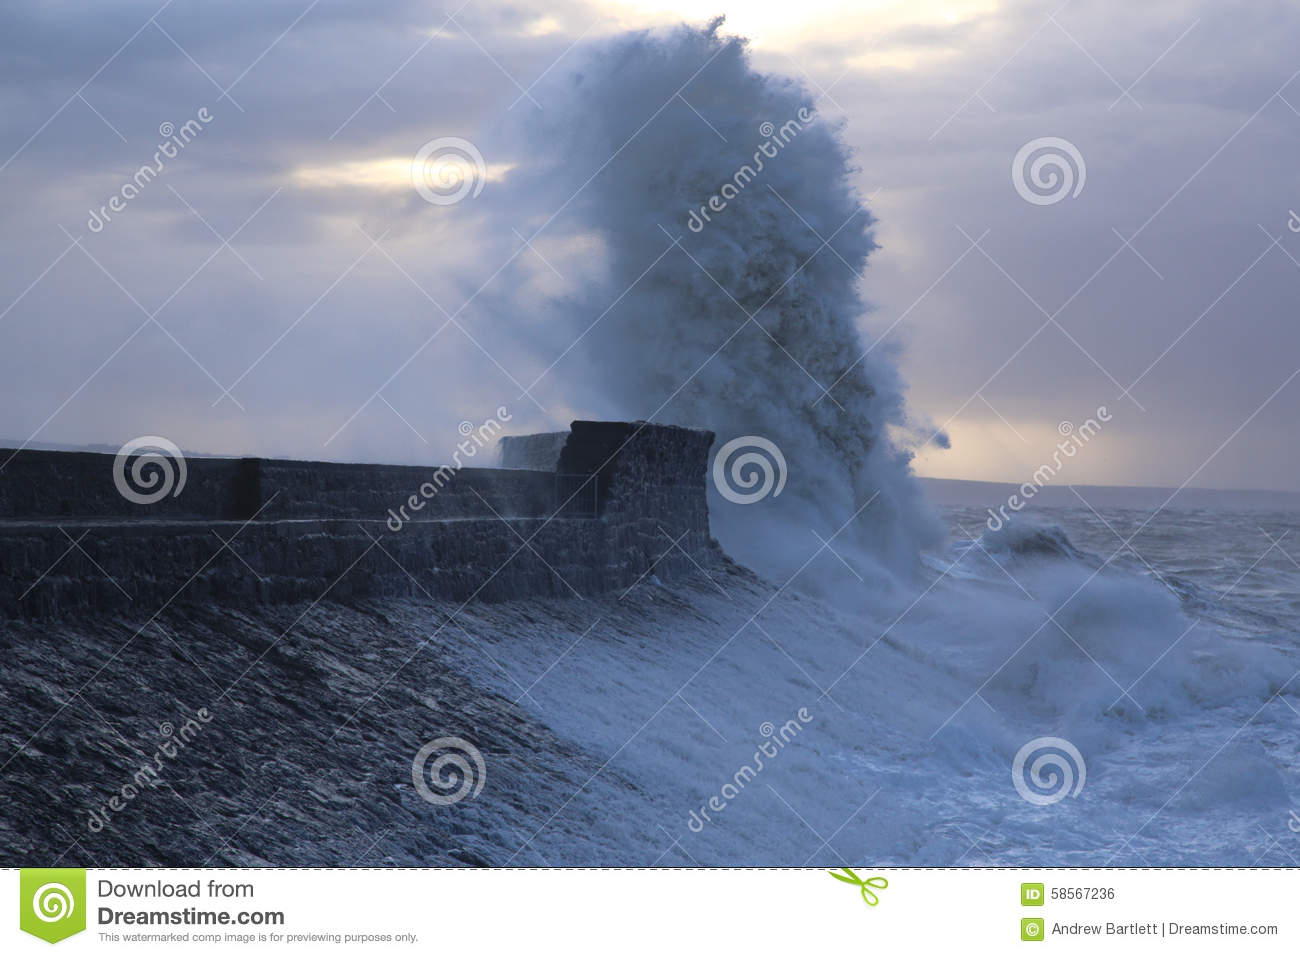 Stormy weather at Porthcawl lighthouse, South Wales, UK.